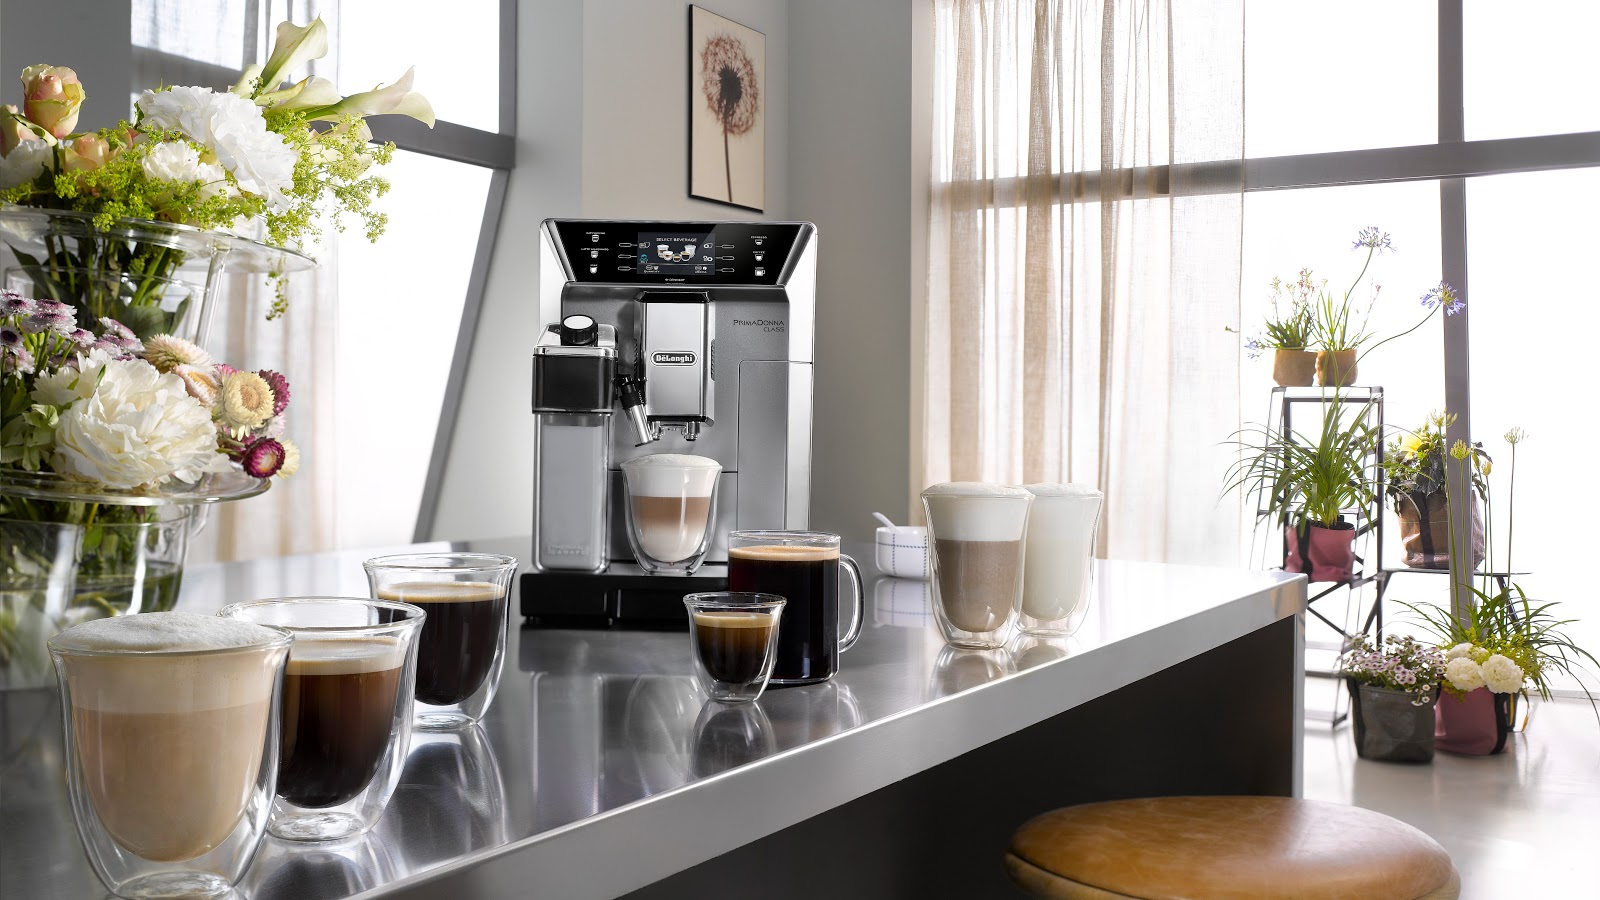 the De'Longhi Prima Donna Elite coffee machine with coffee beverages surrounding it